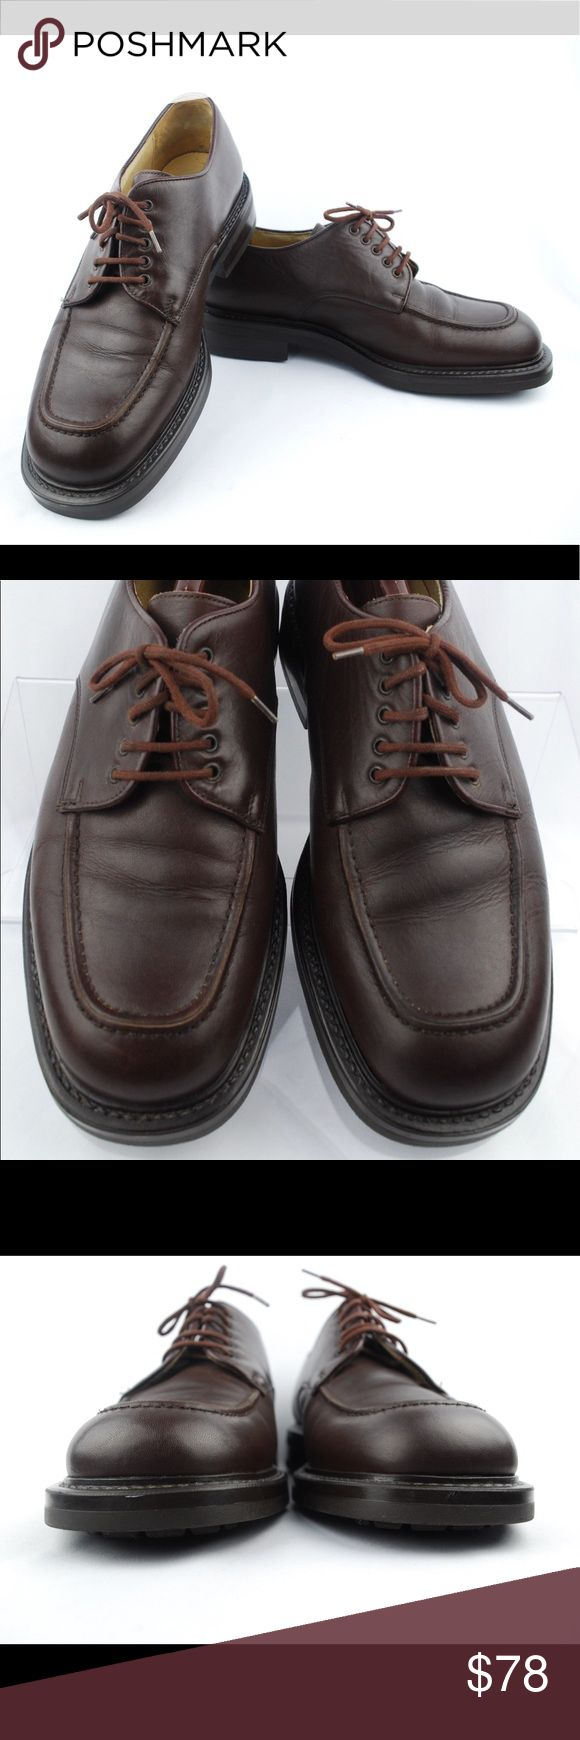 J.CREW Men's Brown Leather Moc Toe Lace Oxfords J.CREW Men's Brown Leather Moc Toe Lace Oxfords Shoes Made in Italy Size 10 M  Size: 10 M Color: Brown Design: 16311 Leather Upper + Lining / Synthetic Sole  Condition: Pre-Owned/ Excellent Used Condition, Please Check the Photos. J. Crew Shoes Oxfords & Derbys